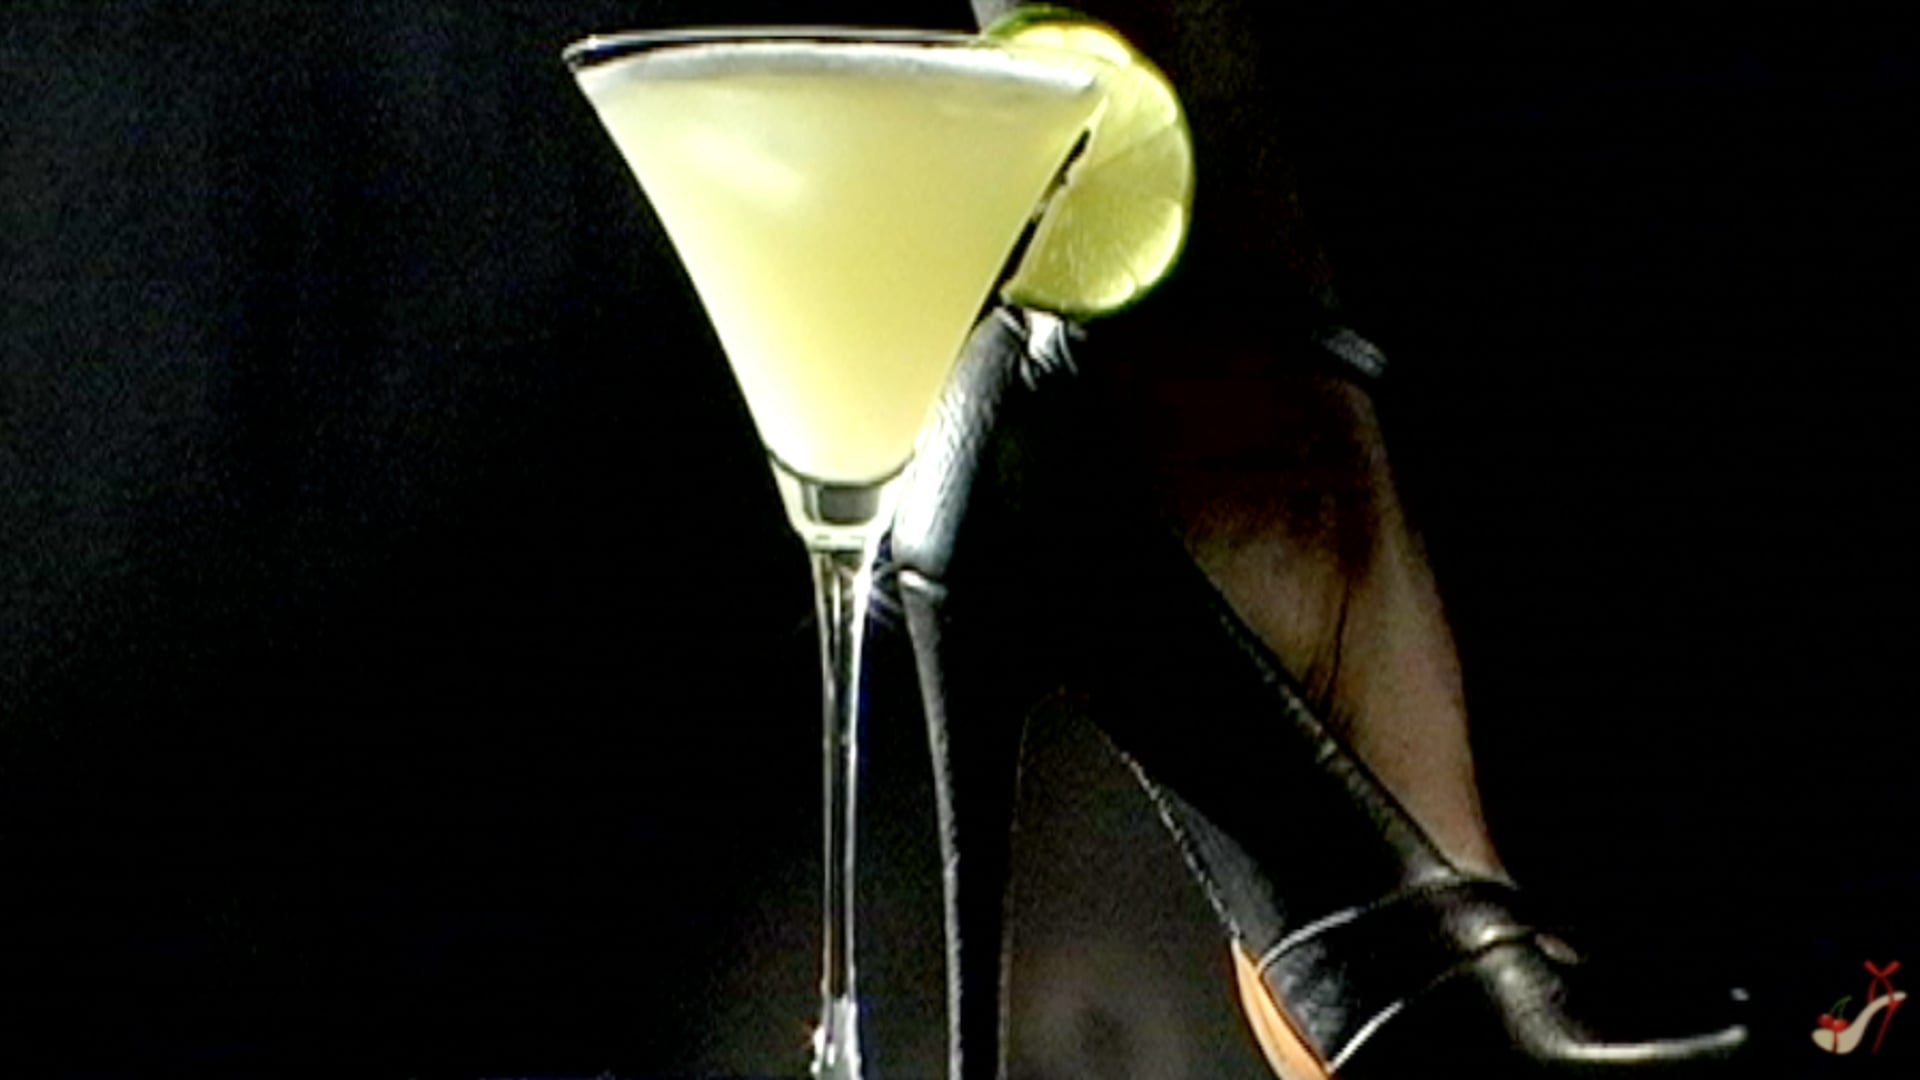 The 'Haute' Cocktail